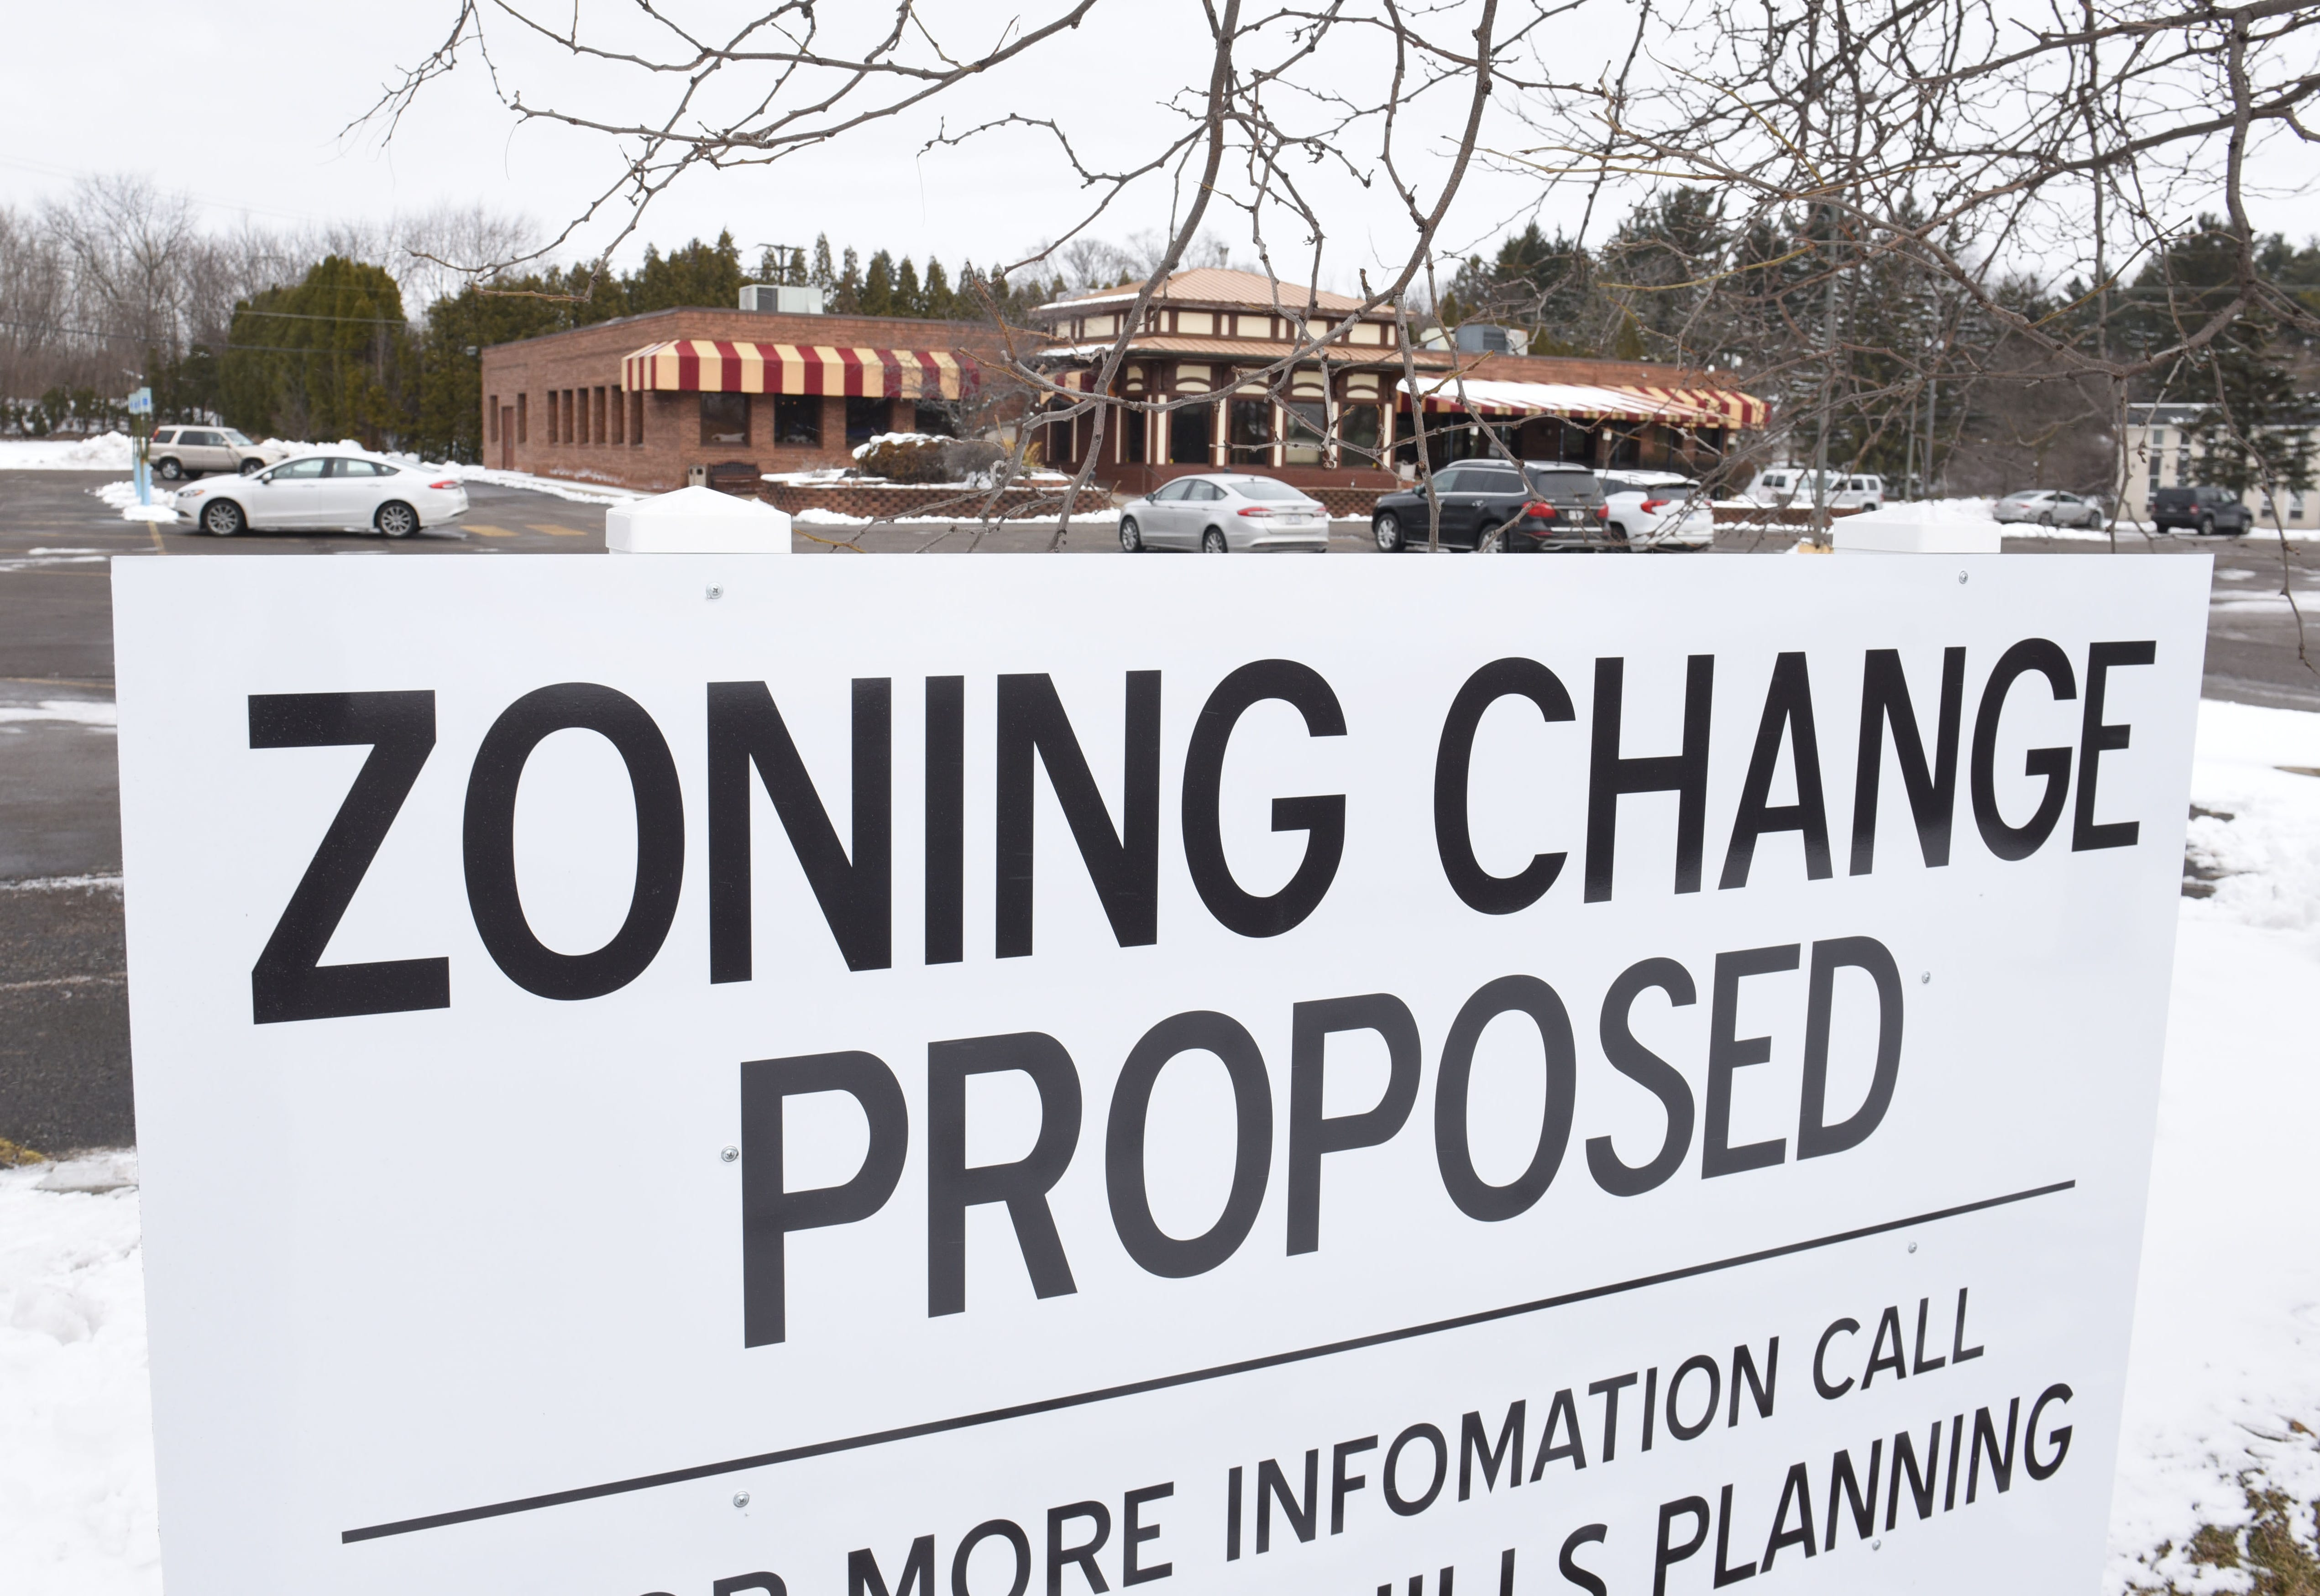 Owners John and Pete Ginopolis are finding that a zoning change sign has customers believing prematurely that Ginopolis' Bar-B-Q Smokehouse has closed. If all goes as planned, it will stay open until late spring or early summer.